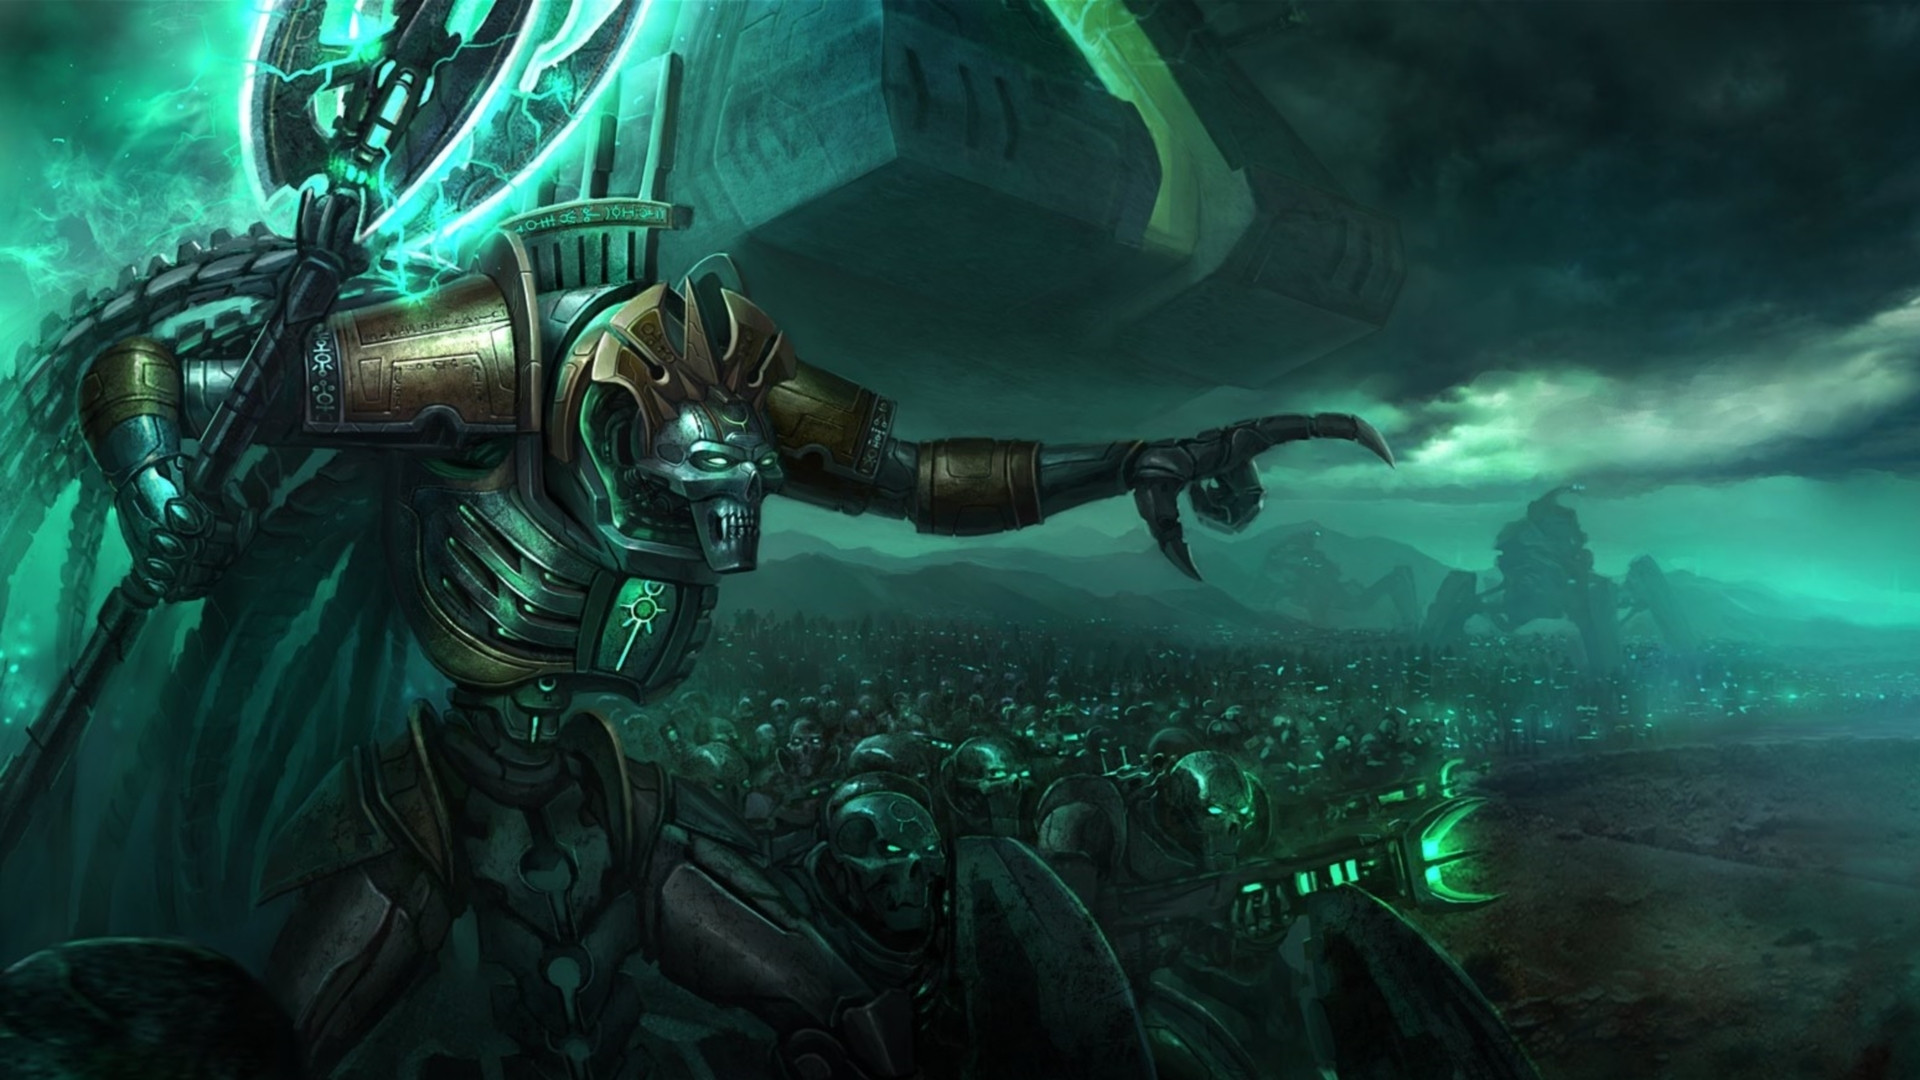 warhammer 40k wallpaper 1680x1050 - photo #38